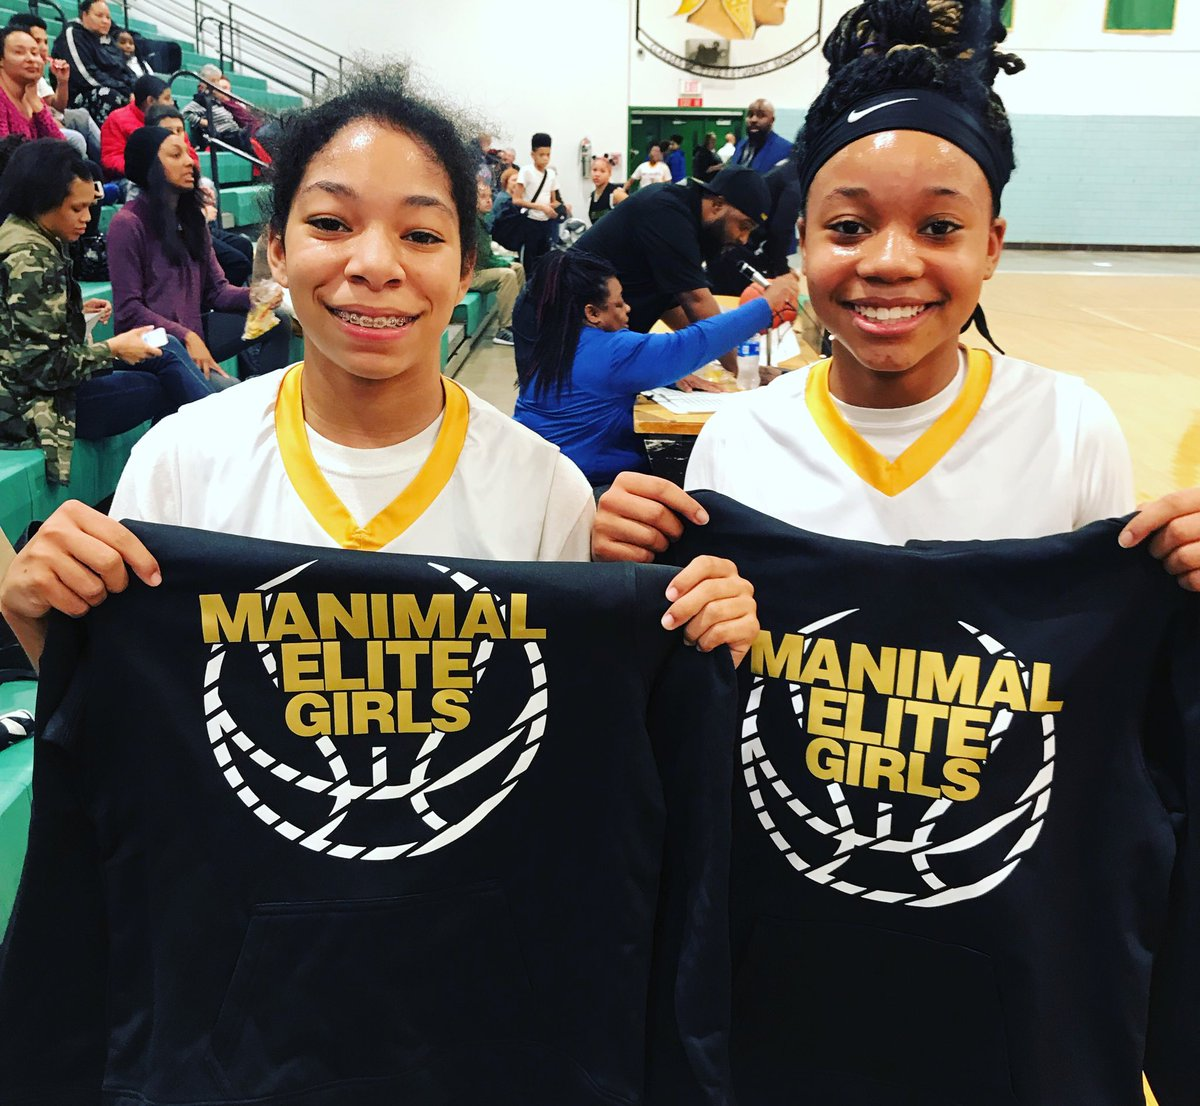 Dynamic Duo  Maree Gober & A'Niya Haskins. These  two will be Co-Captains of the @manimal_elite_girls 2024 group #UnleashtheManimal #OurGirlsGrind  #kennethfaried #ManimalMode #TakingOurCityBack #adidas #adidas3stripelife  #SummerGonnabeLit🔥 #EarnednotGiven